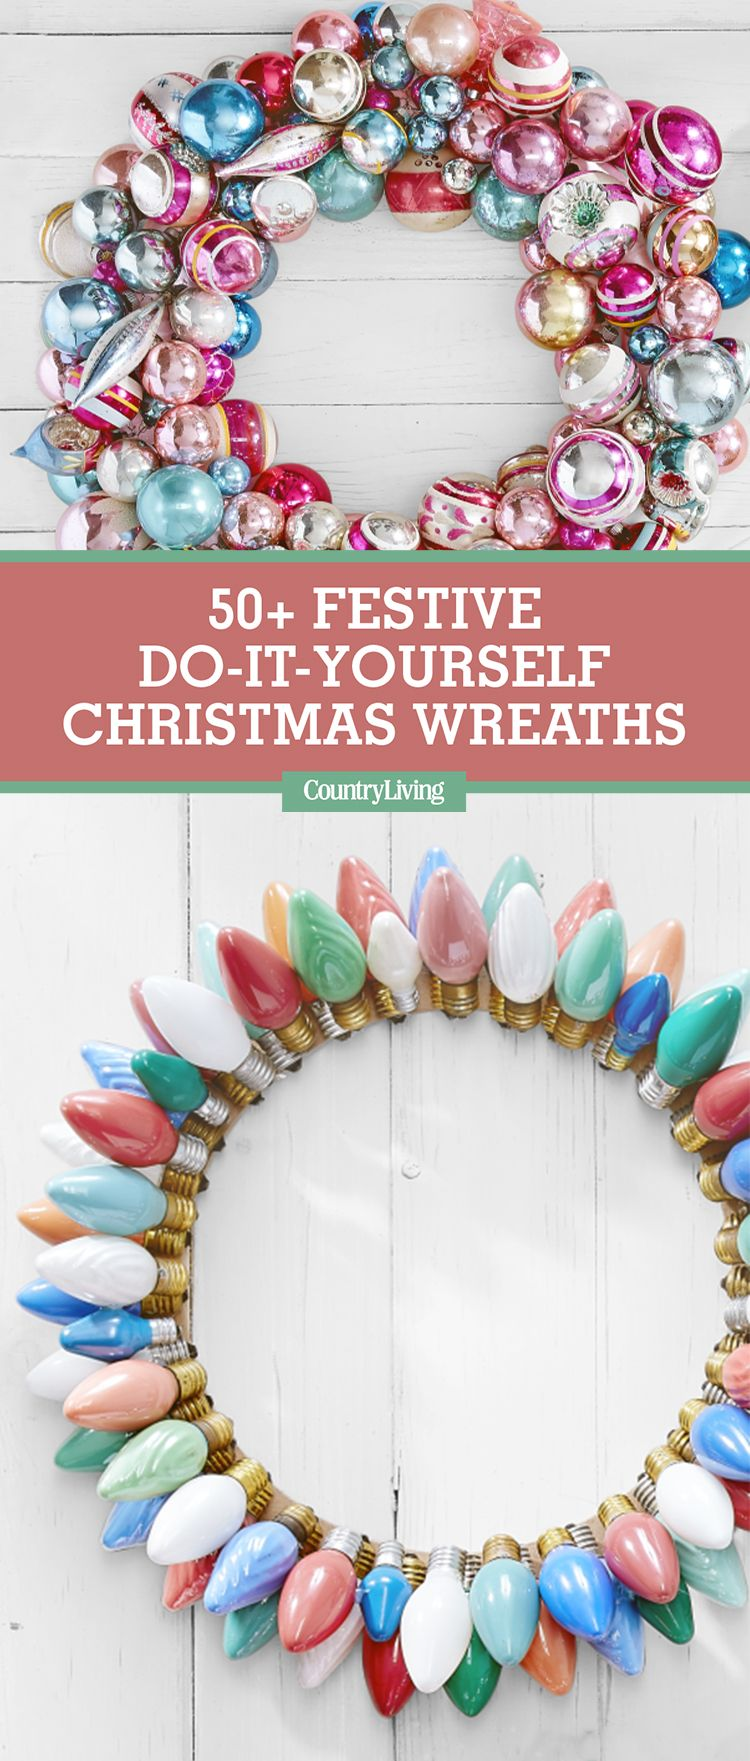 50 diy christmas wreath ideas how to make holiday wreaths crafts solutioingenieria Choice Image